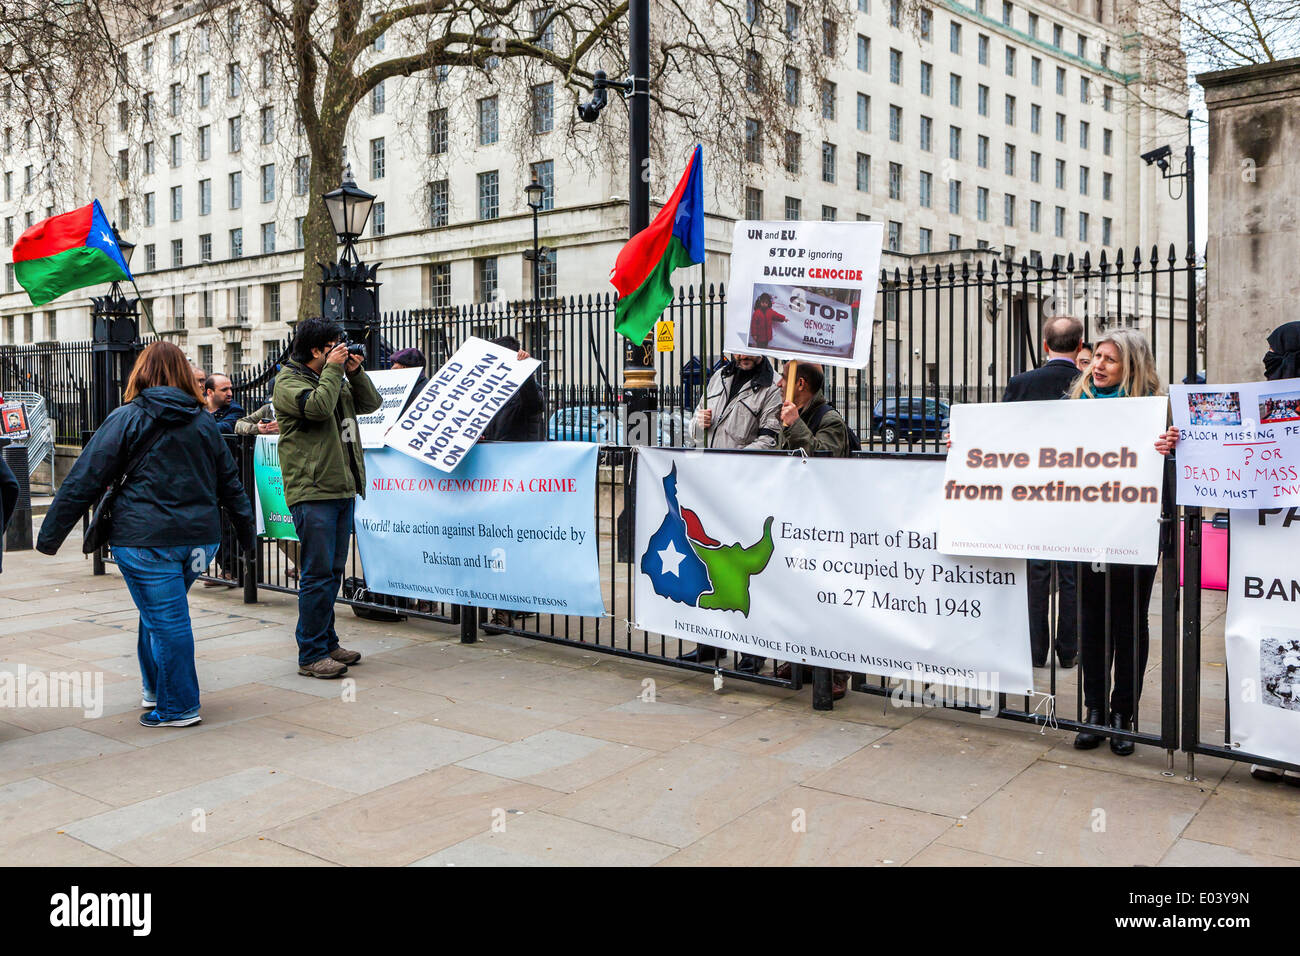 Balochistan Black Day: Baloch Nationalists protest the forceful occupation of Balochistan by Pakistan at Downing street, London - Stock Image